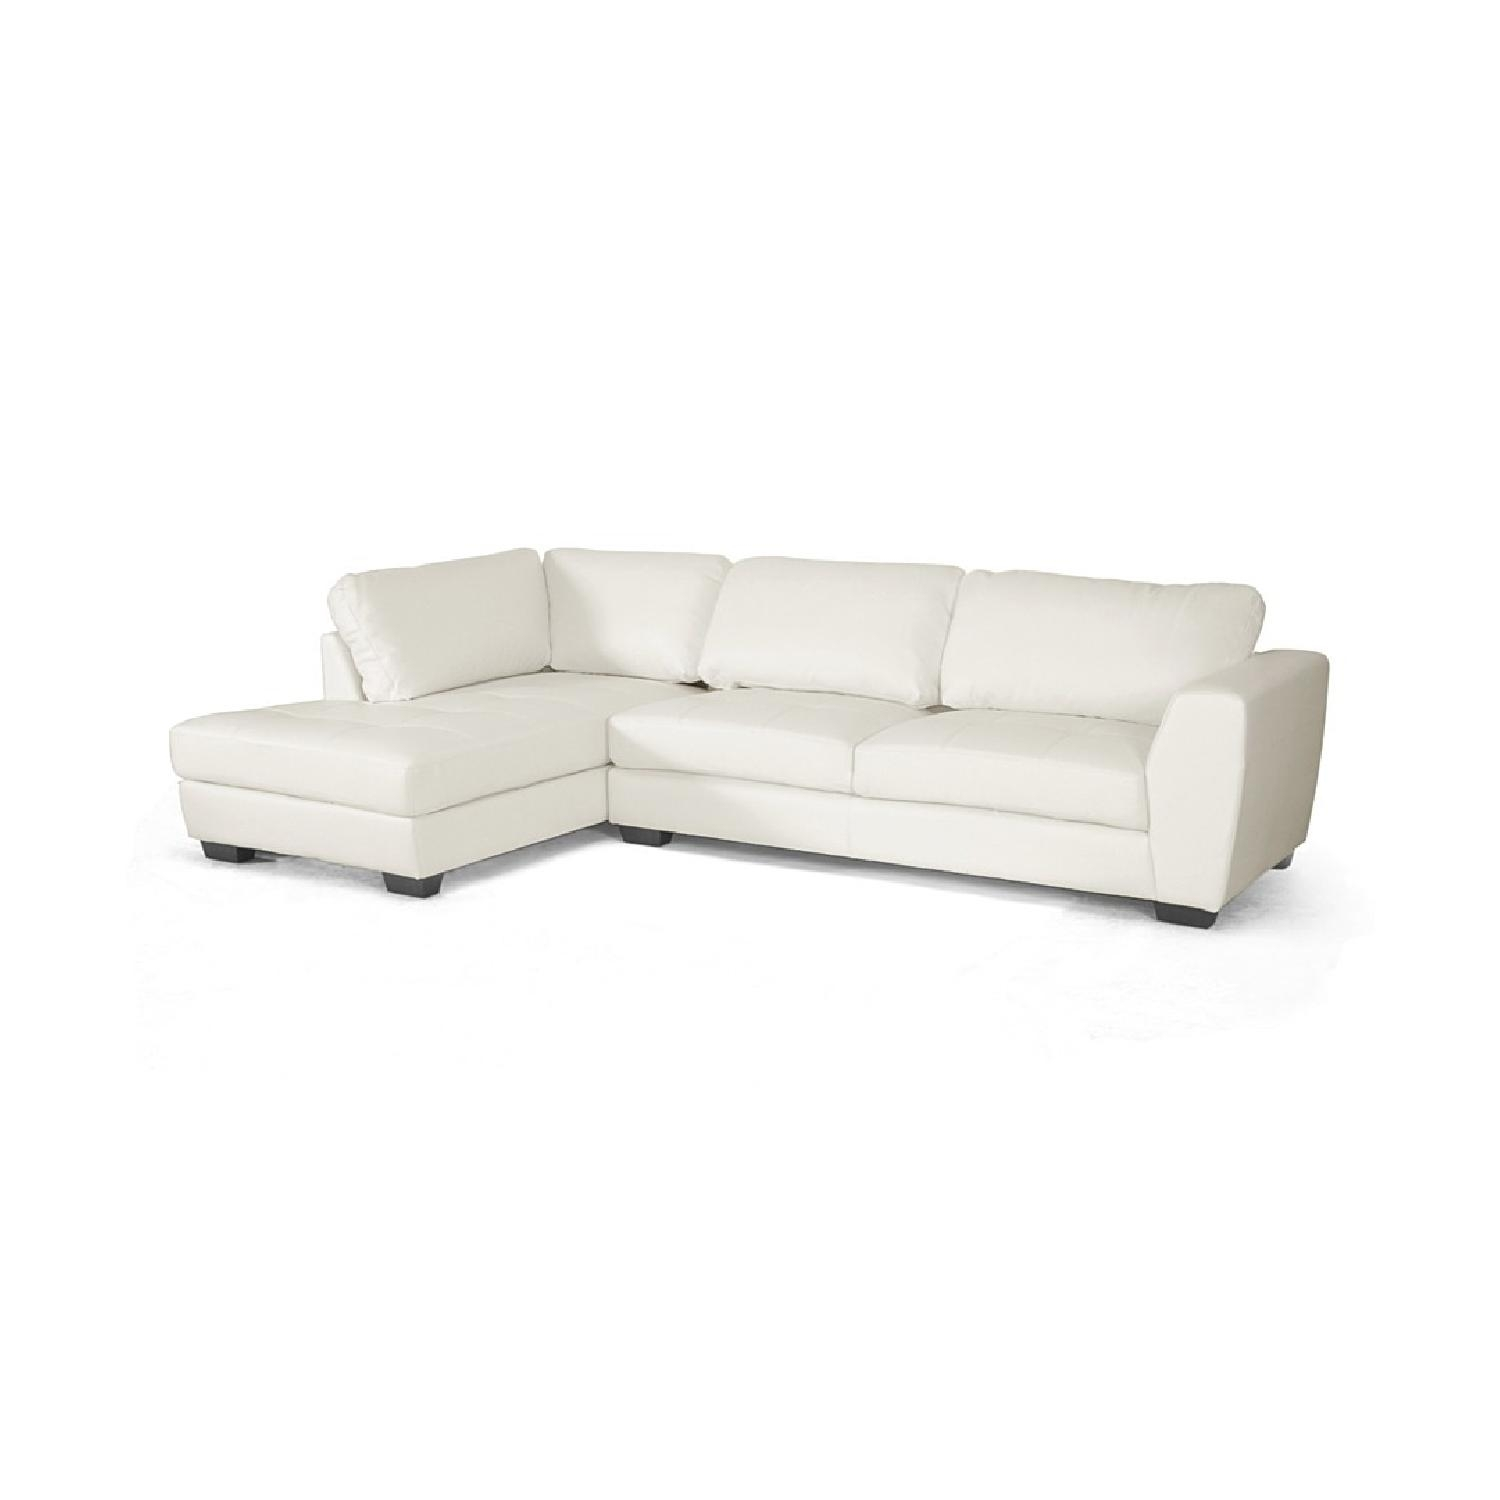 Sofa W Chaise – Home Decor 88 inside Mcculla Sofa Sectionals With Reversible Chaise (Image 27 of 30)